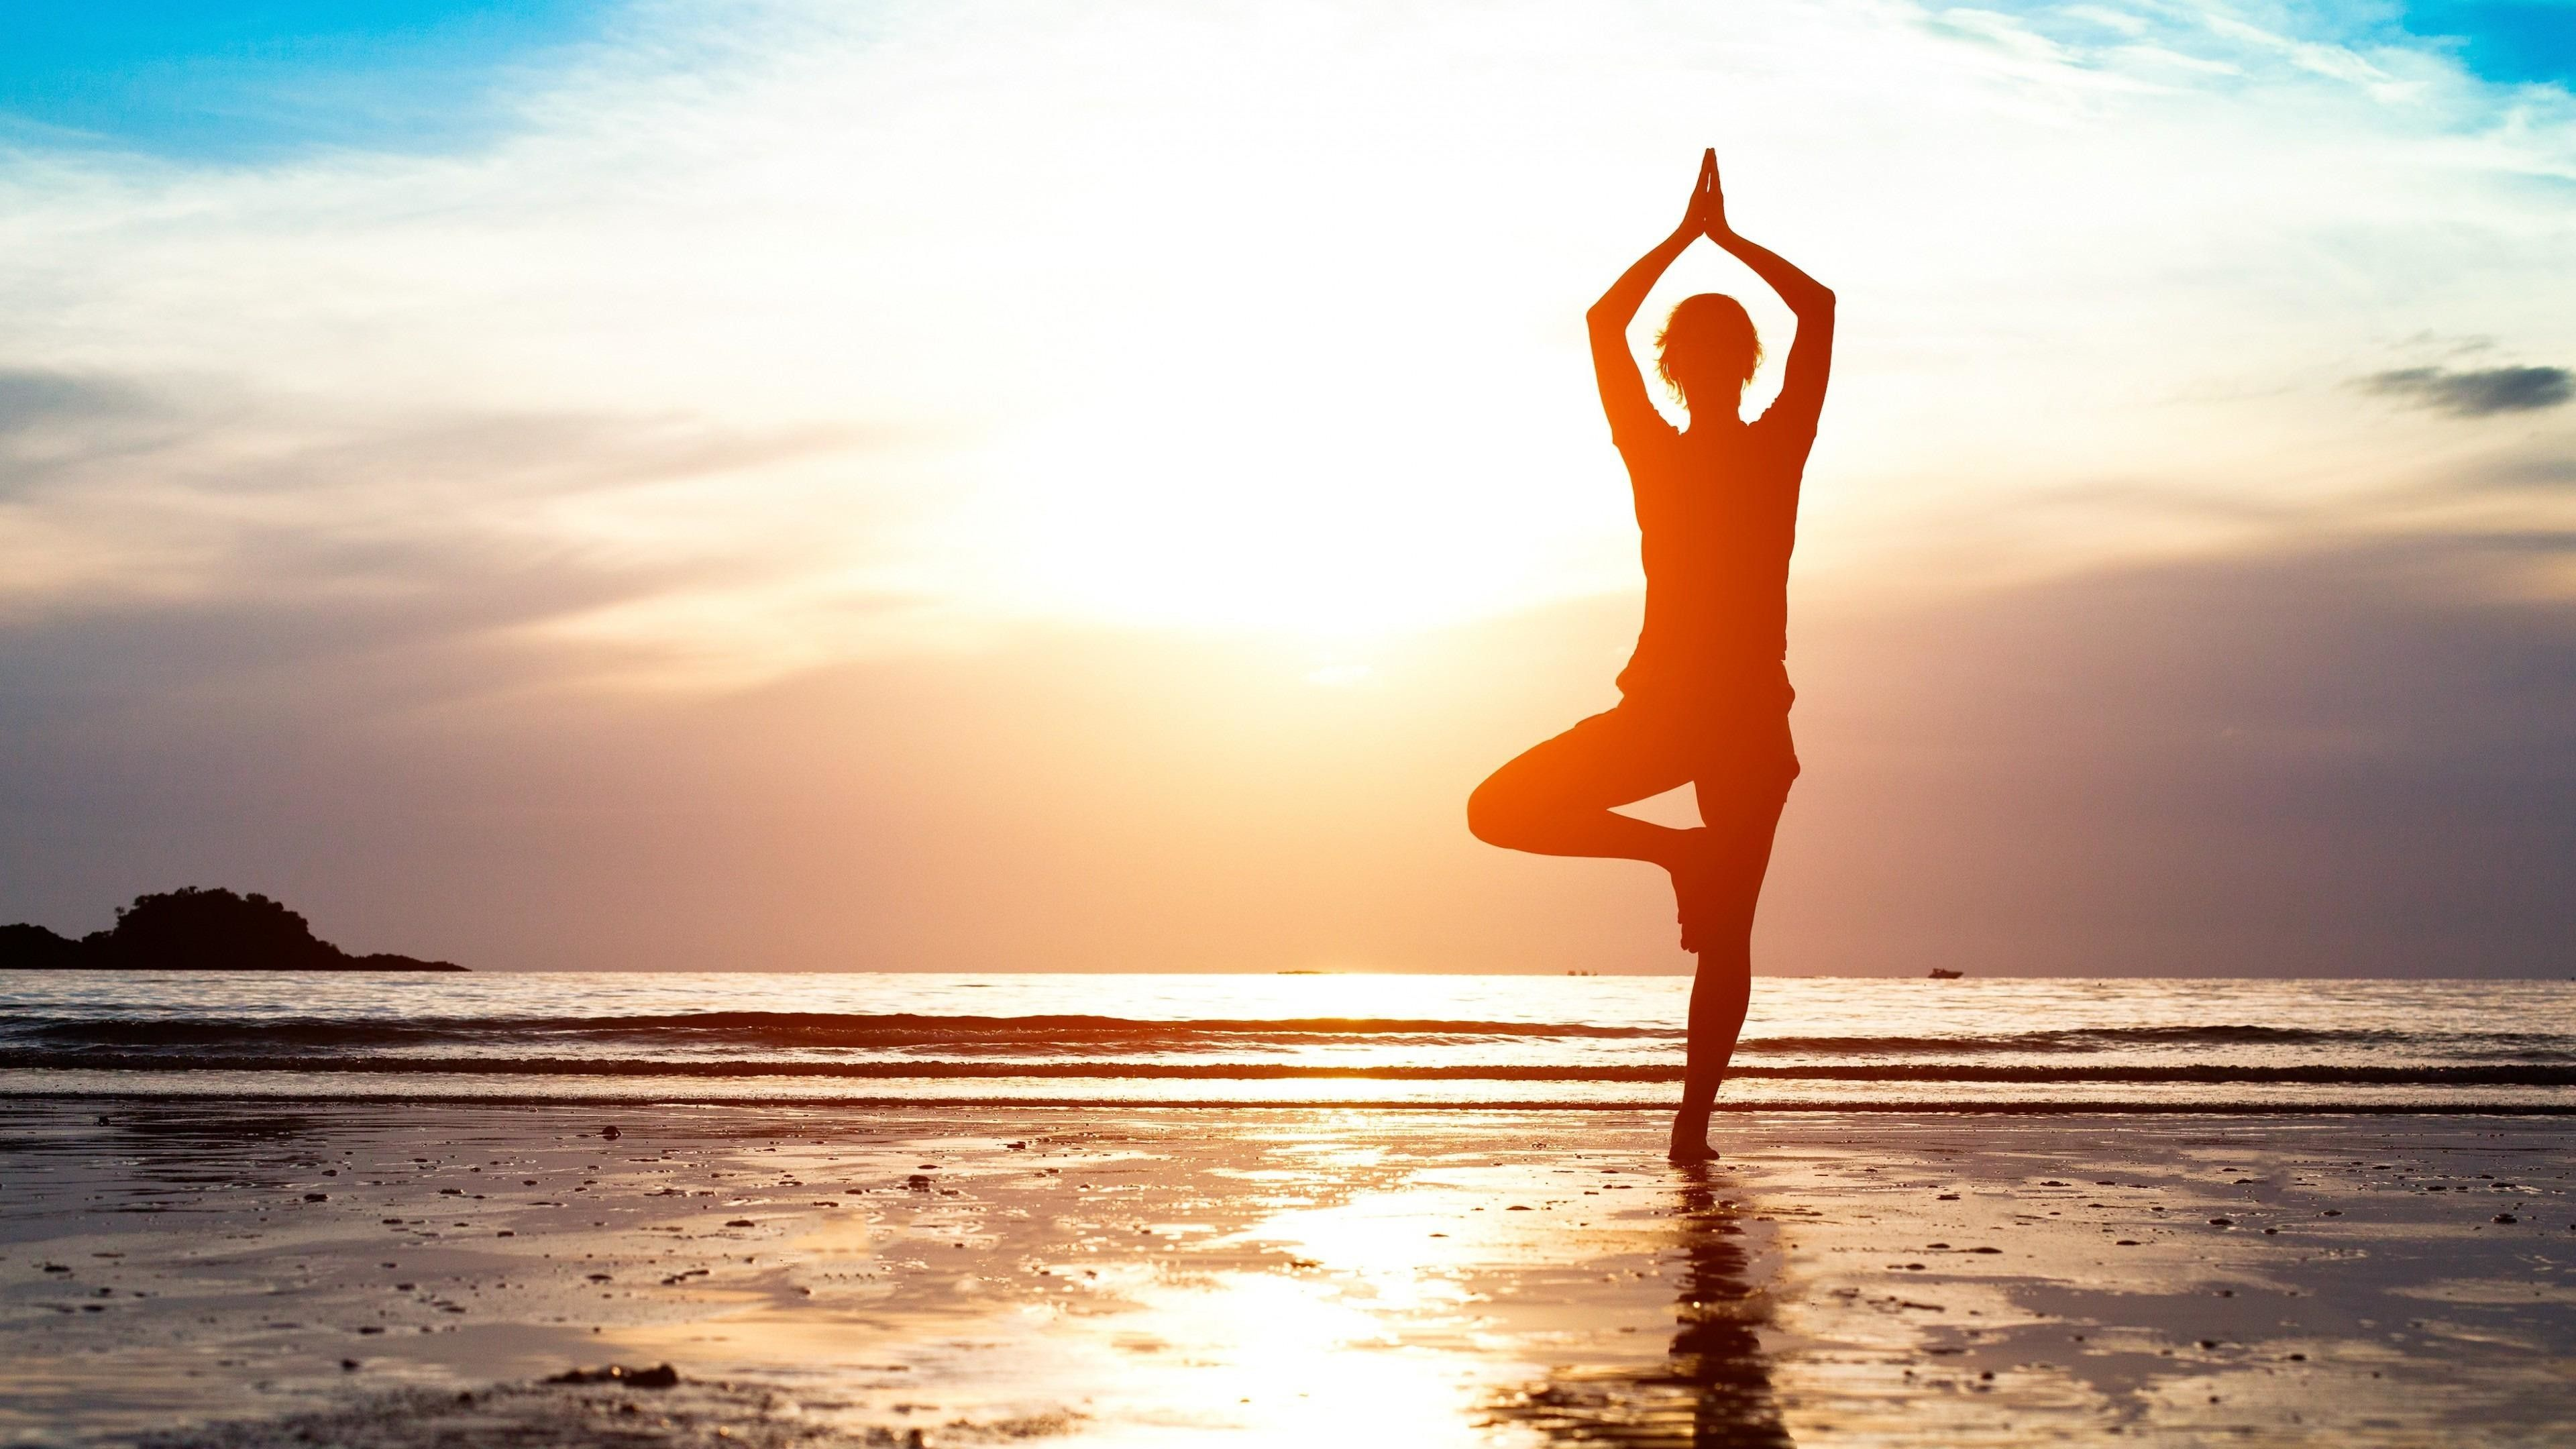 3840x2160 56+ Yoga Background Wallpapers on WallpaperPlay